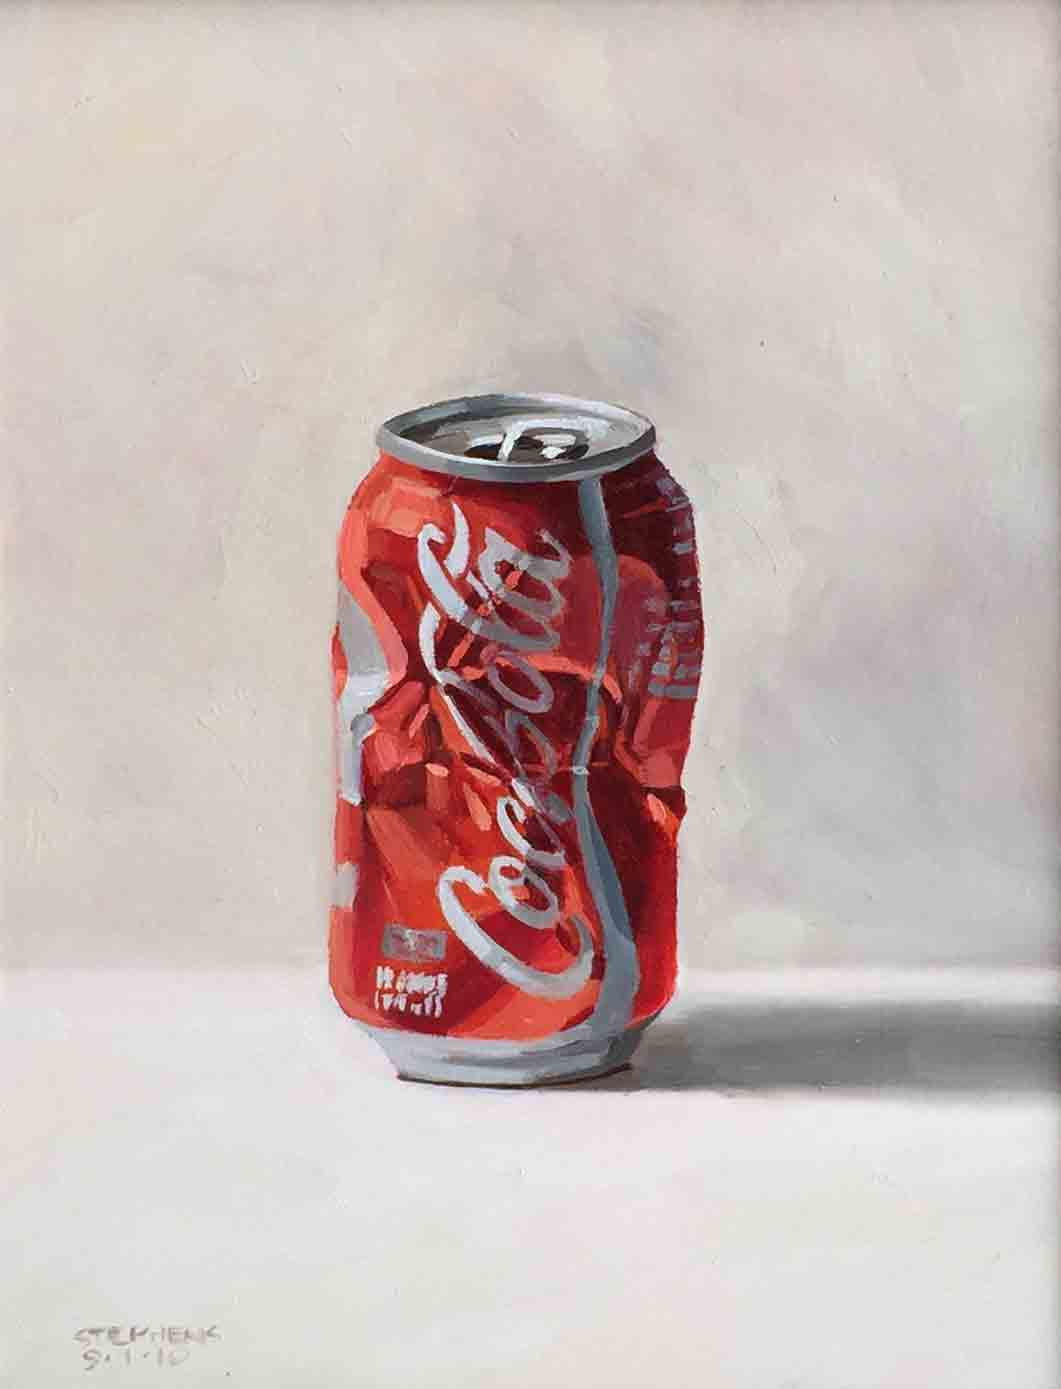 Craig Stephens, Coke, 2010